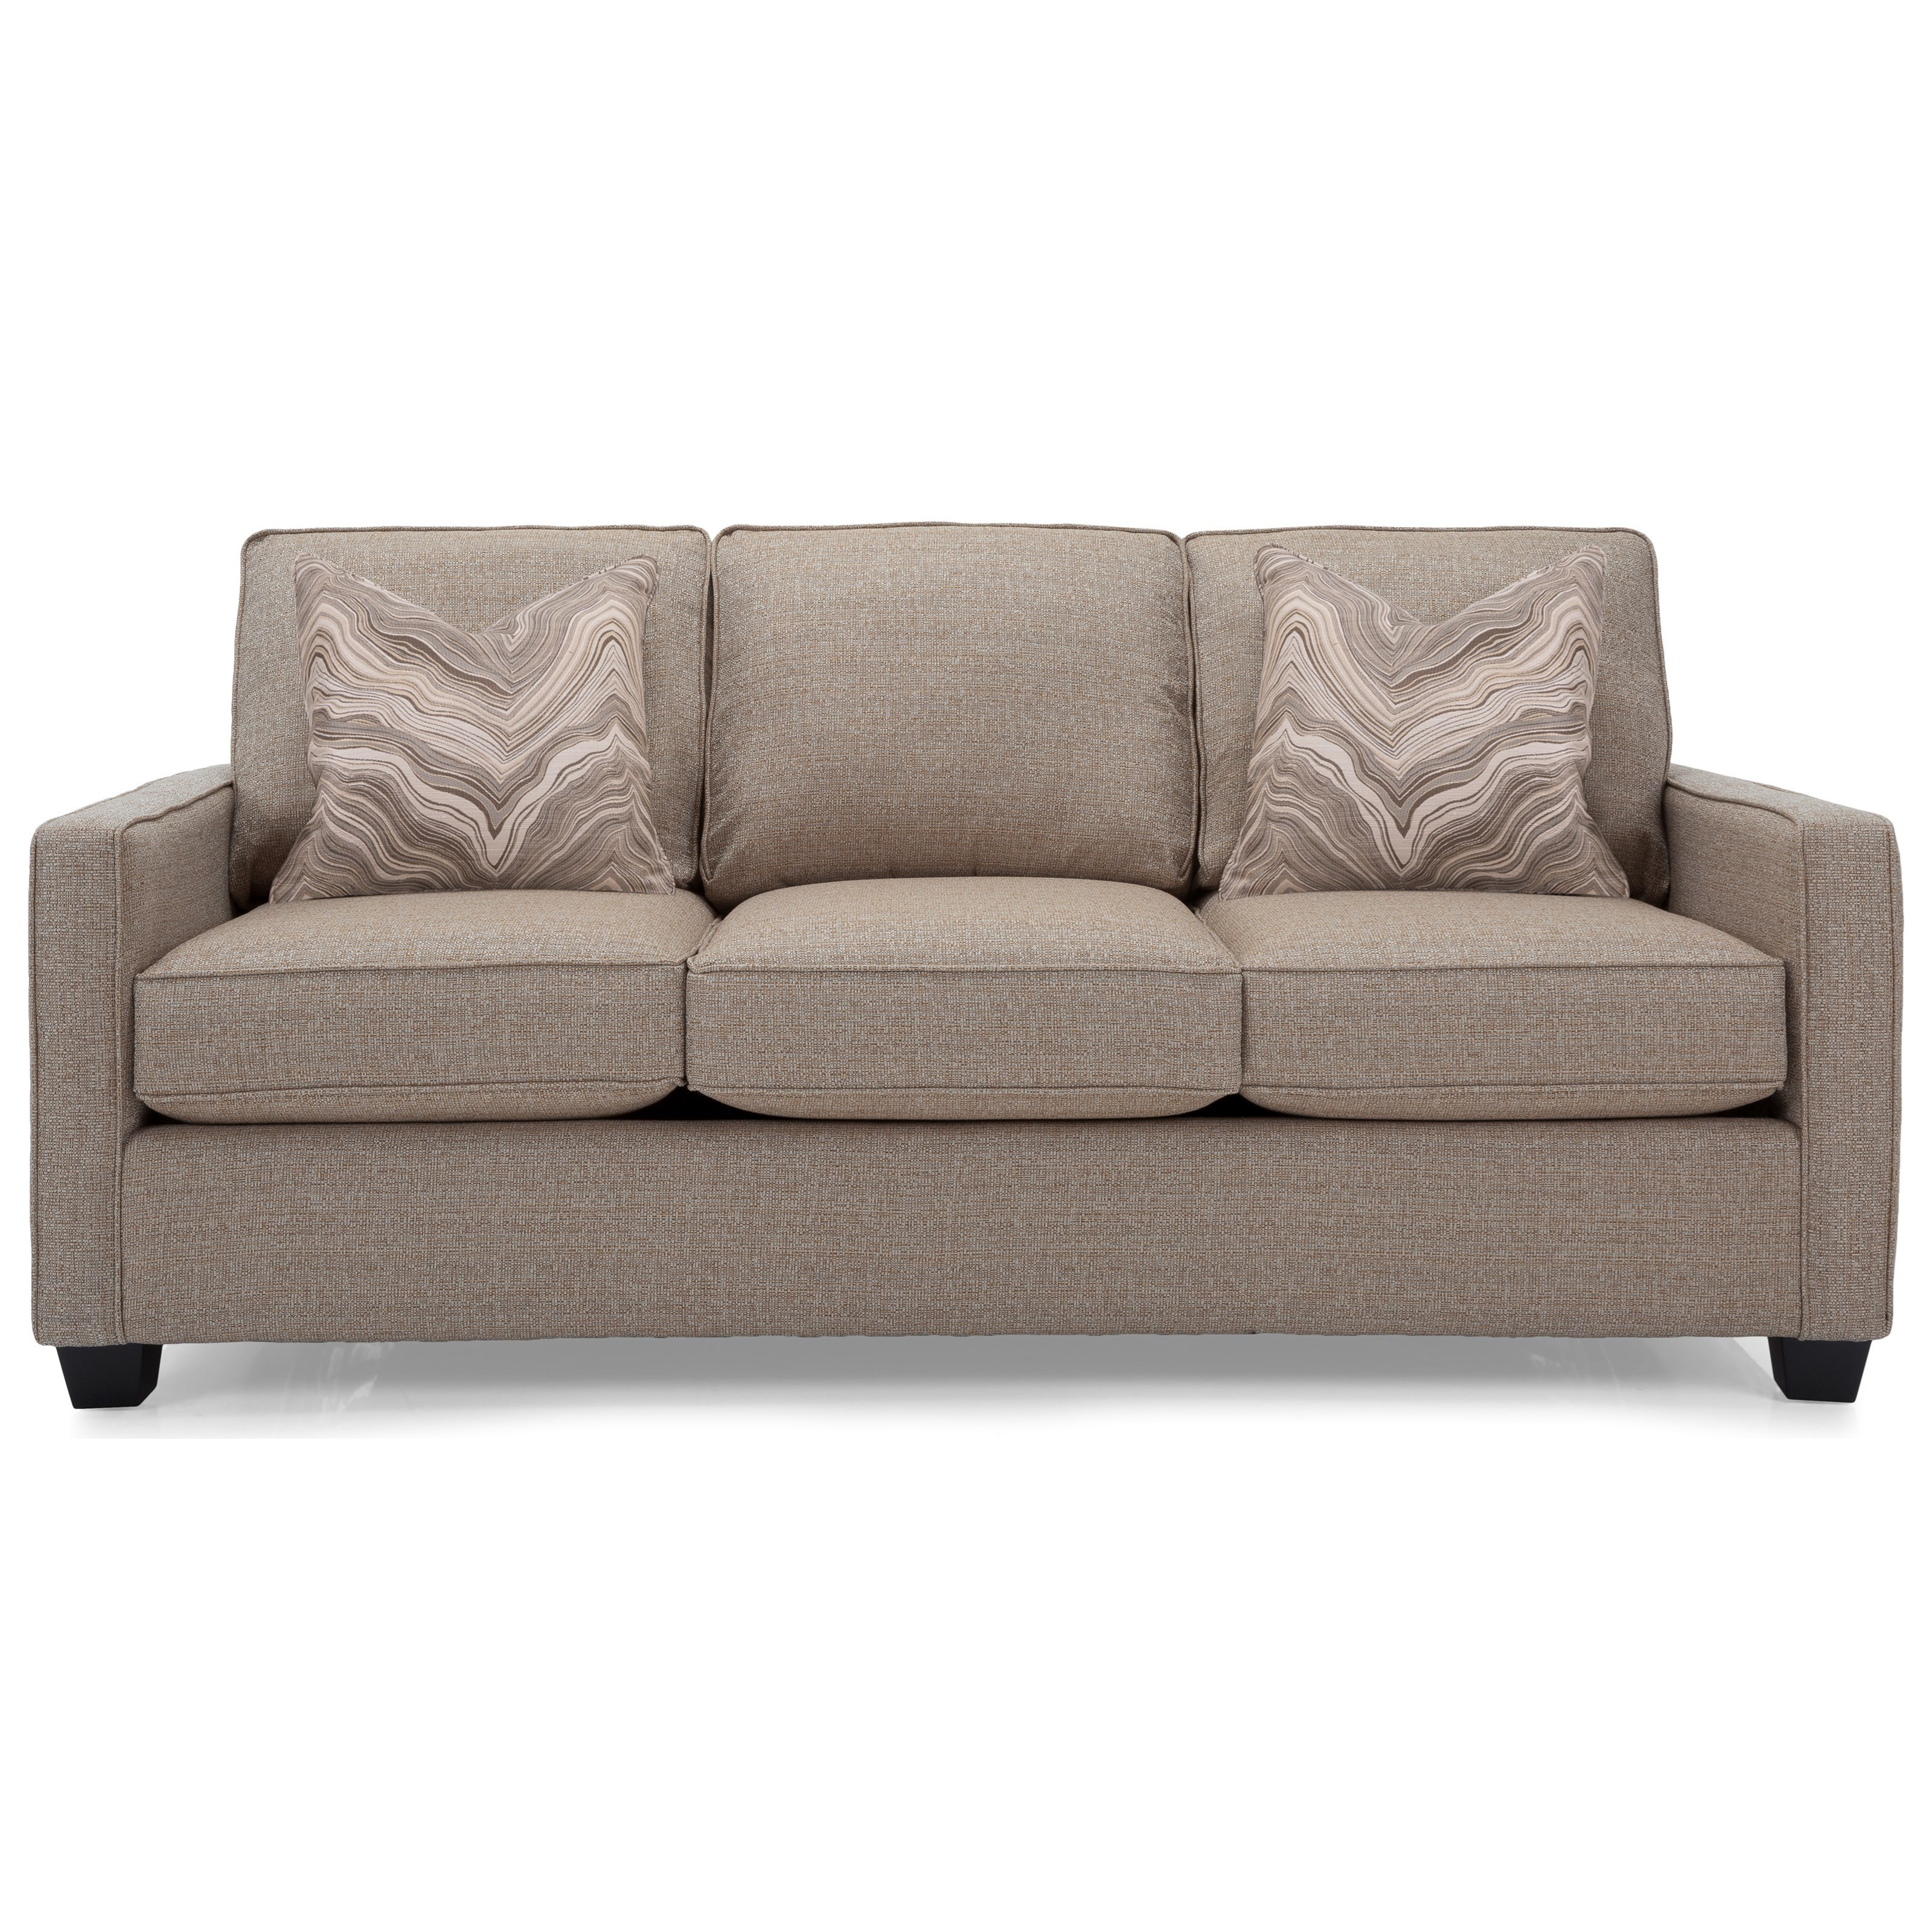 2855 Queen Sofa Sleeper by Decor-Rest at Rooms for Less